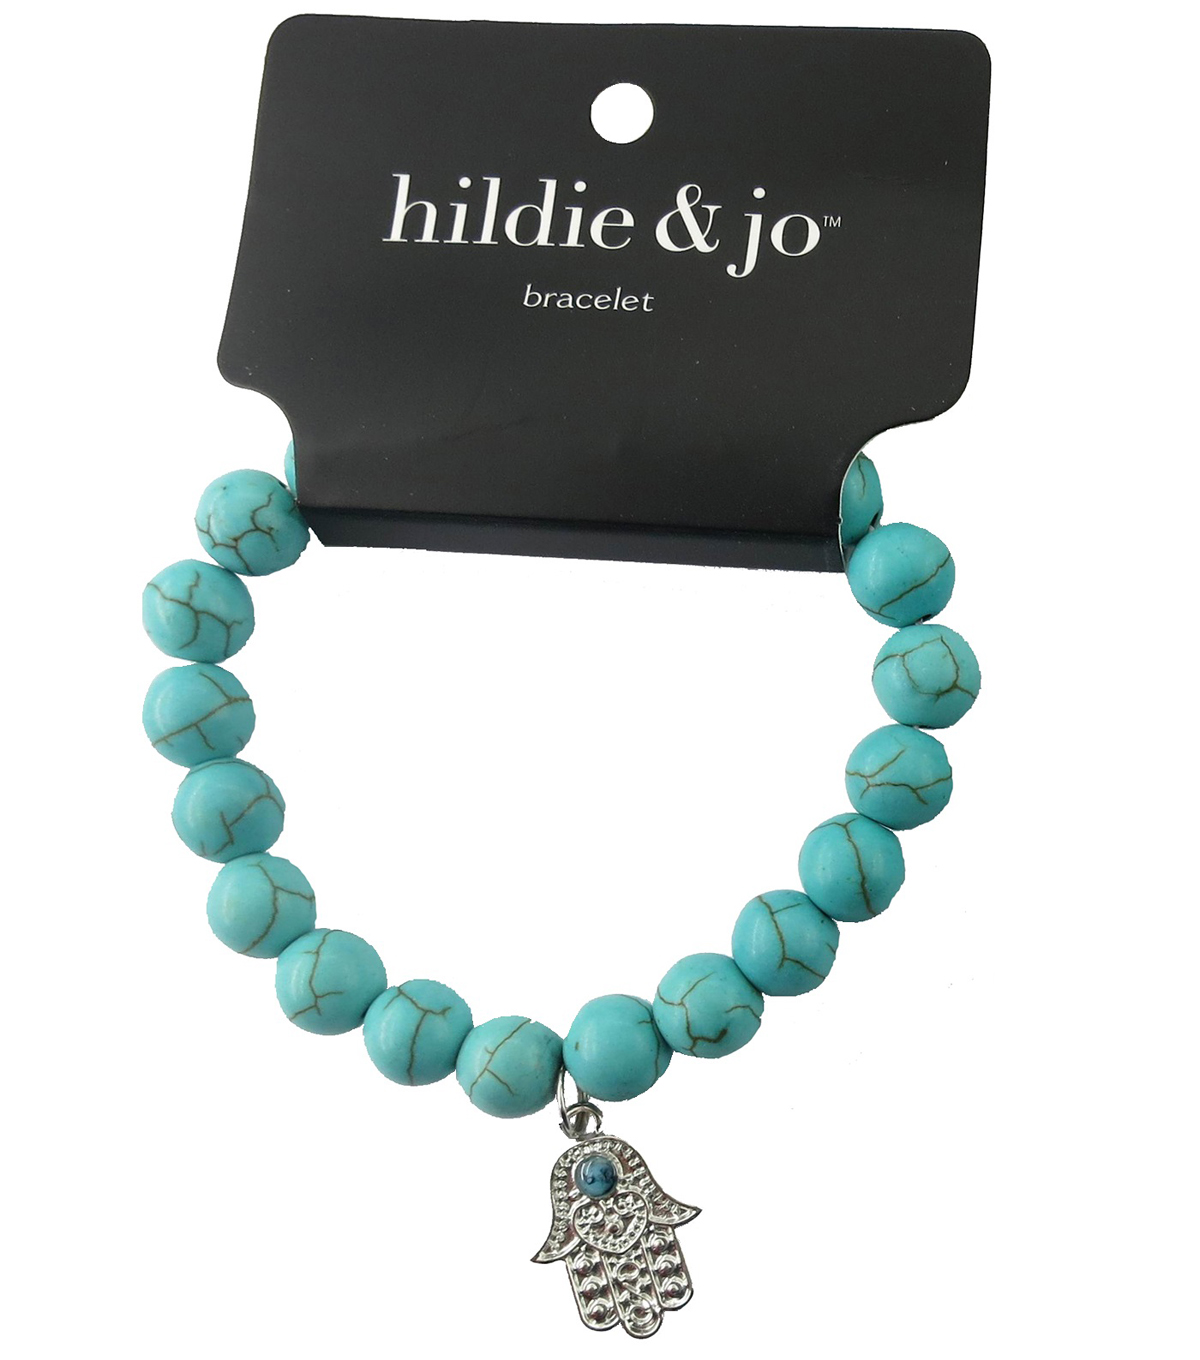 hildie & jo Beads Stretch Bracelet-Turquoise with Silver Hamsa